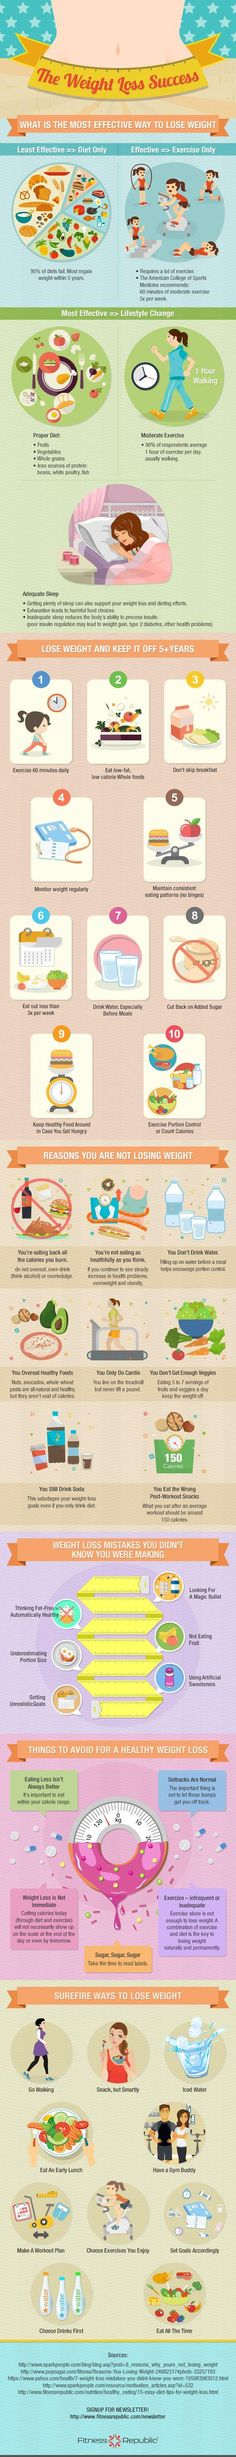 Stay motivated with your diet plan or workout routine with this great online method http://latis.info/DietMotivation